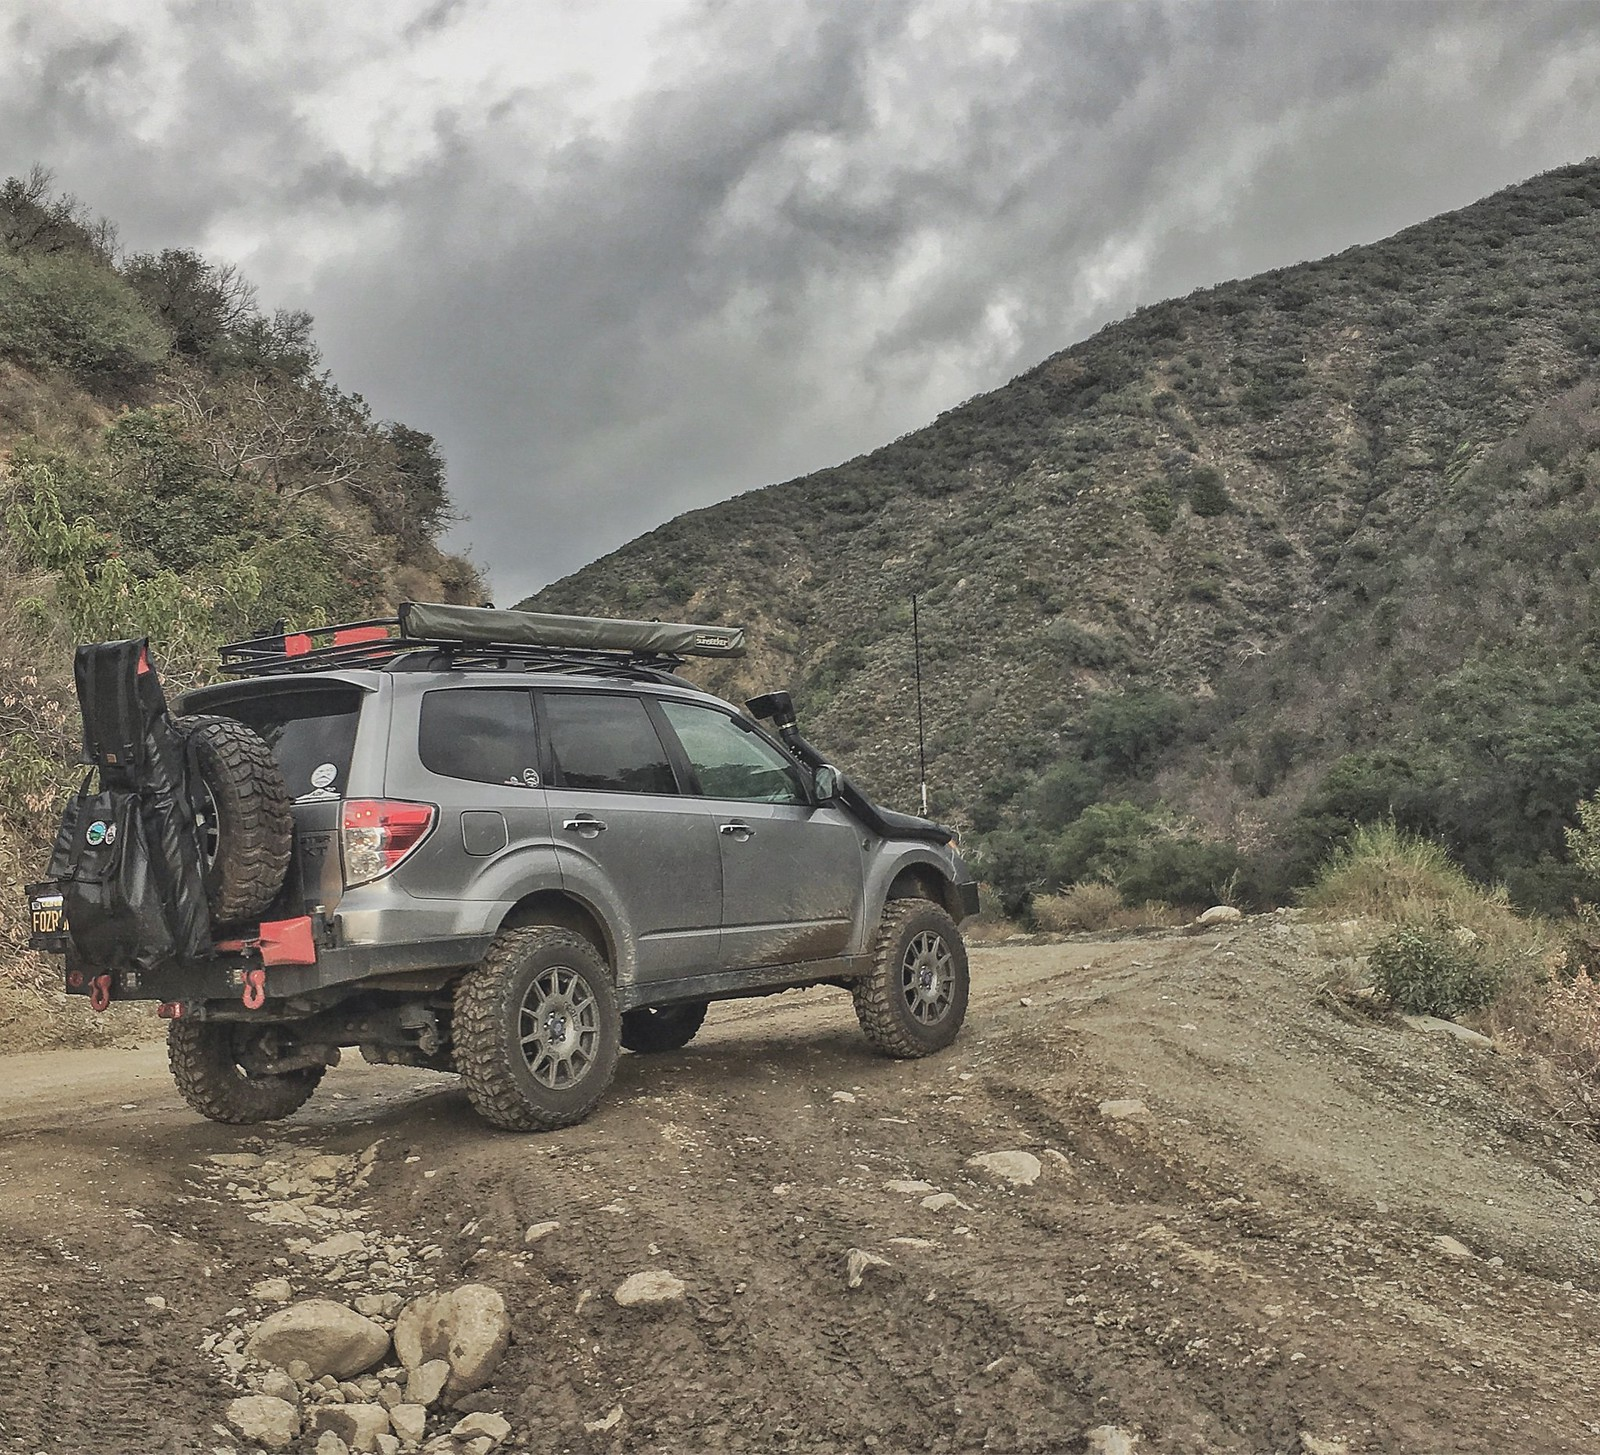 09-'13) - Overland Build Thread | Subaru Forester Owners Forum